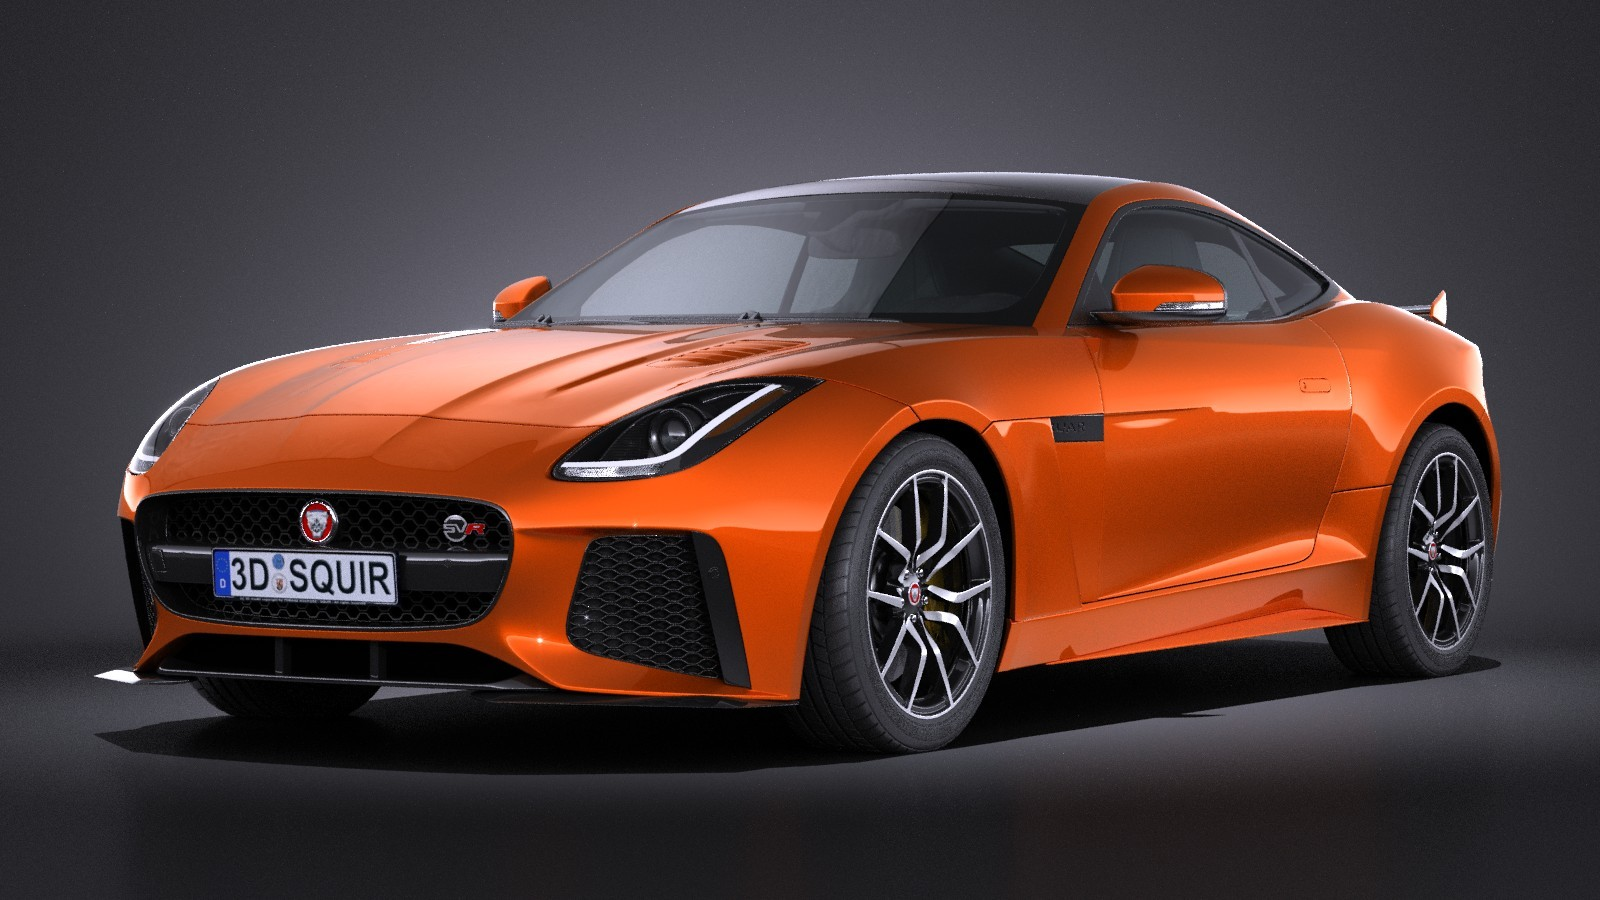 jaguar f type driveline fleet car leasing. Black Bedroom Furniture Sets. Home Design Ideas